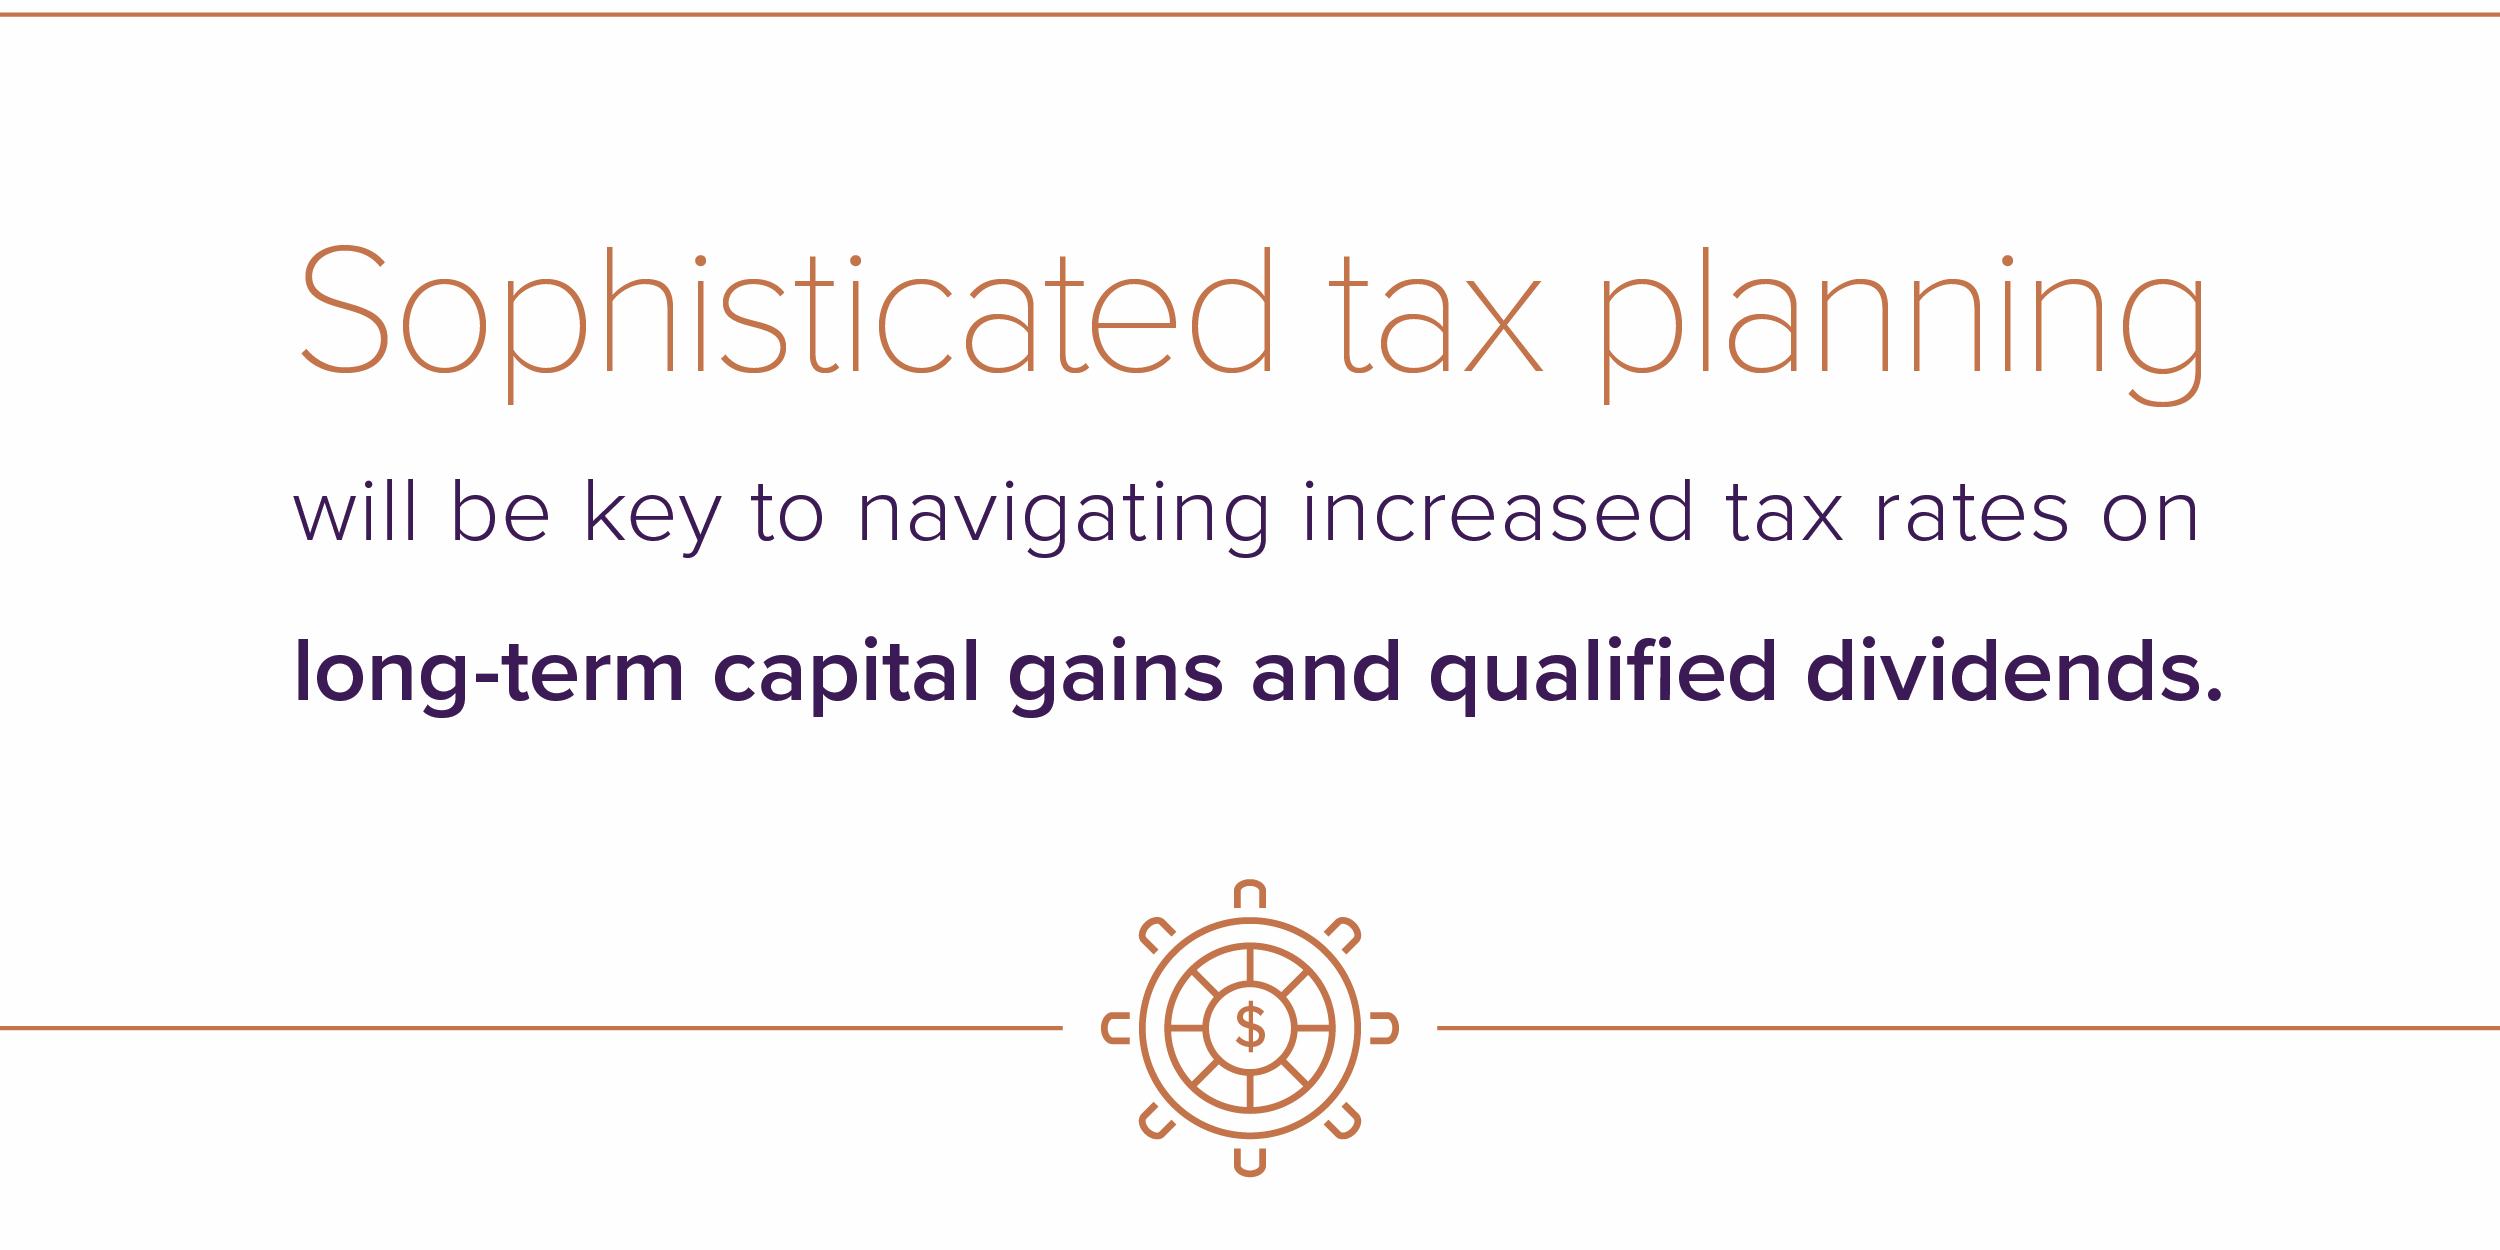 Sophisticated tax planning